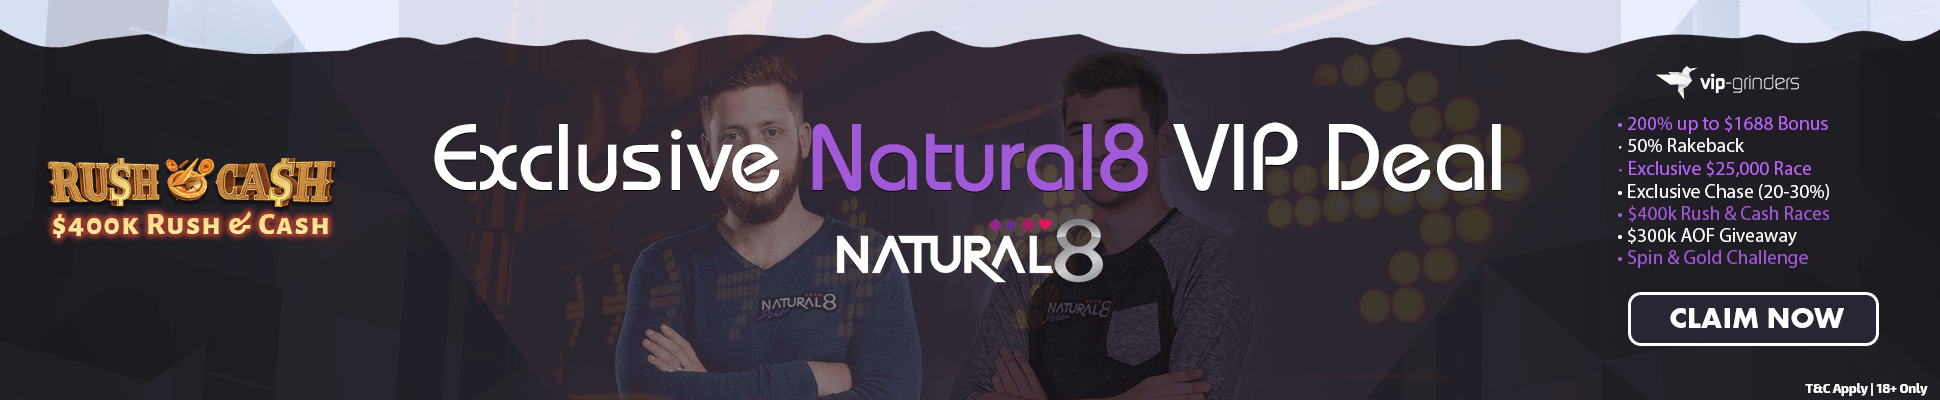 natural8-slider-created-MARCH-2020